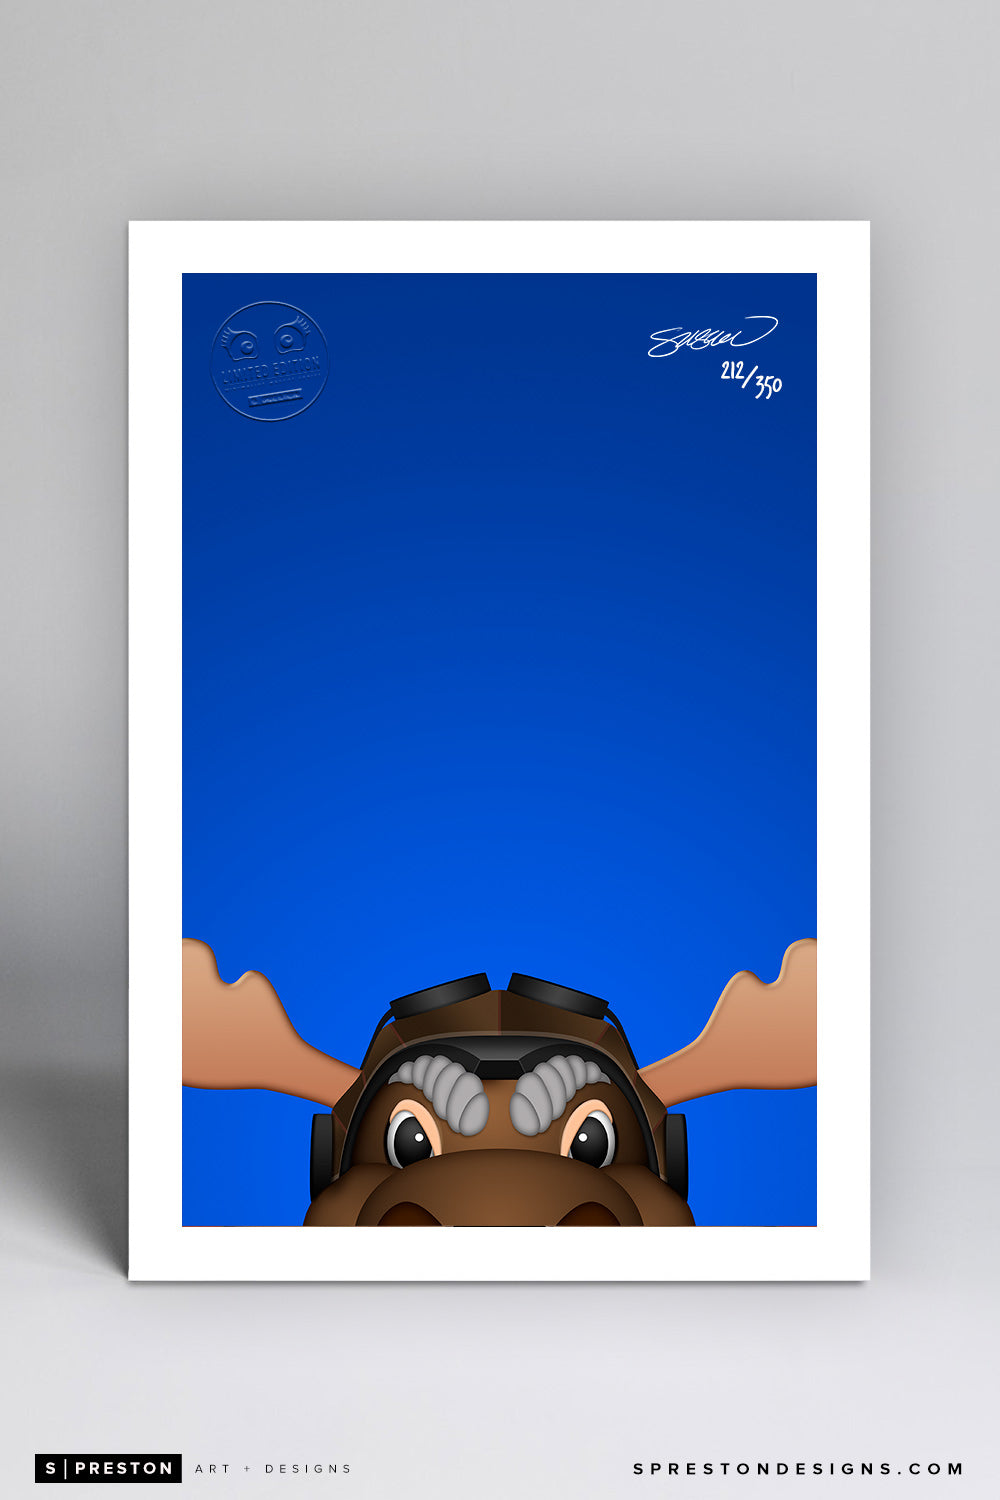 Minimalist Mick E. Moose - Winnipeg Jets - S. Preston